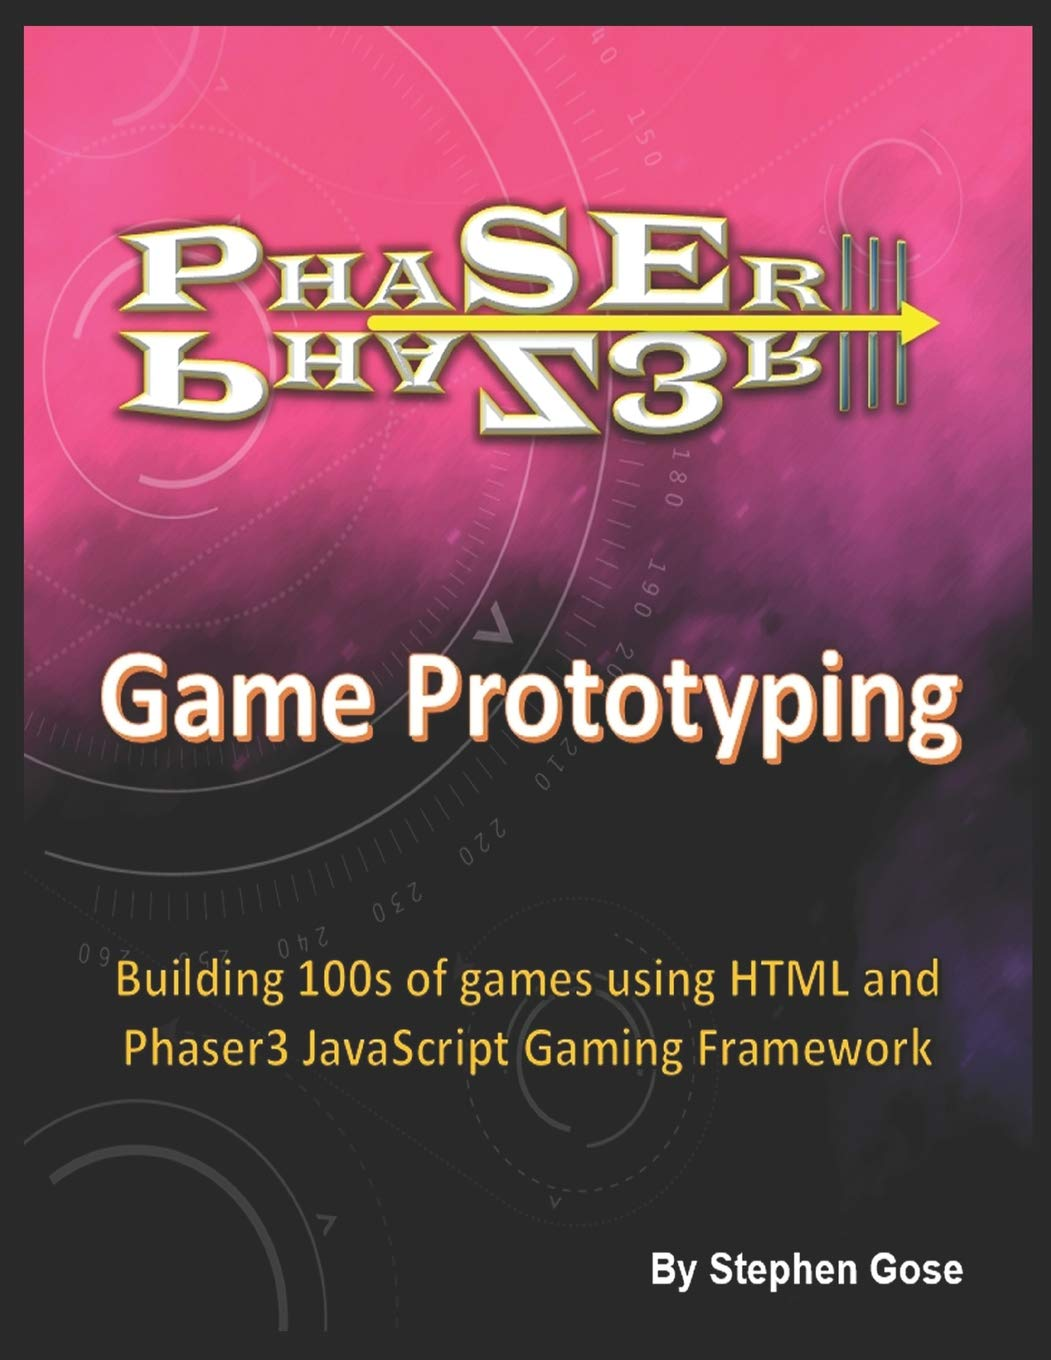 Phaser III Game Prototyping: Building 100s of games using HTML and Phaser3 JavaScript Gaming Framework: Amazon.es: Stephen Gose: Libros en idiomas ...